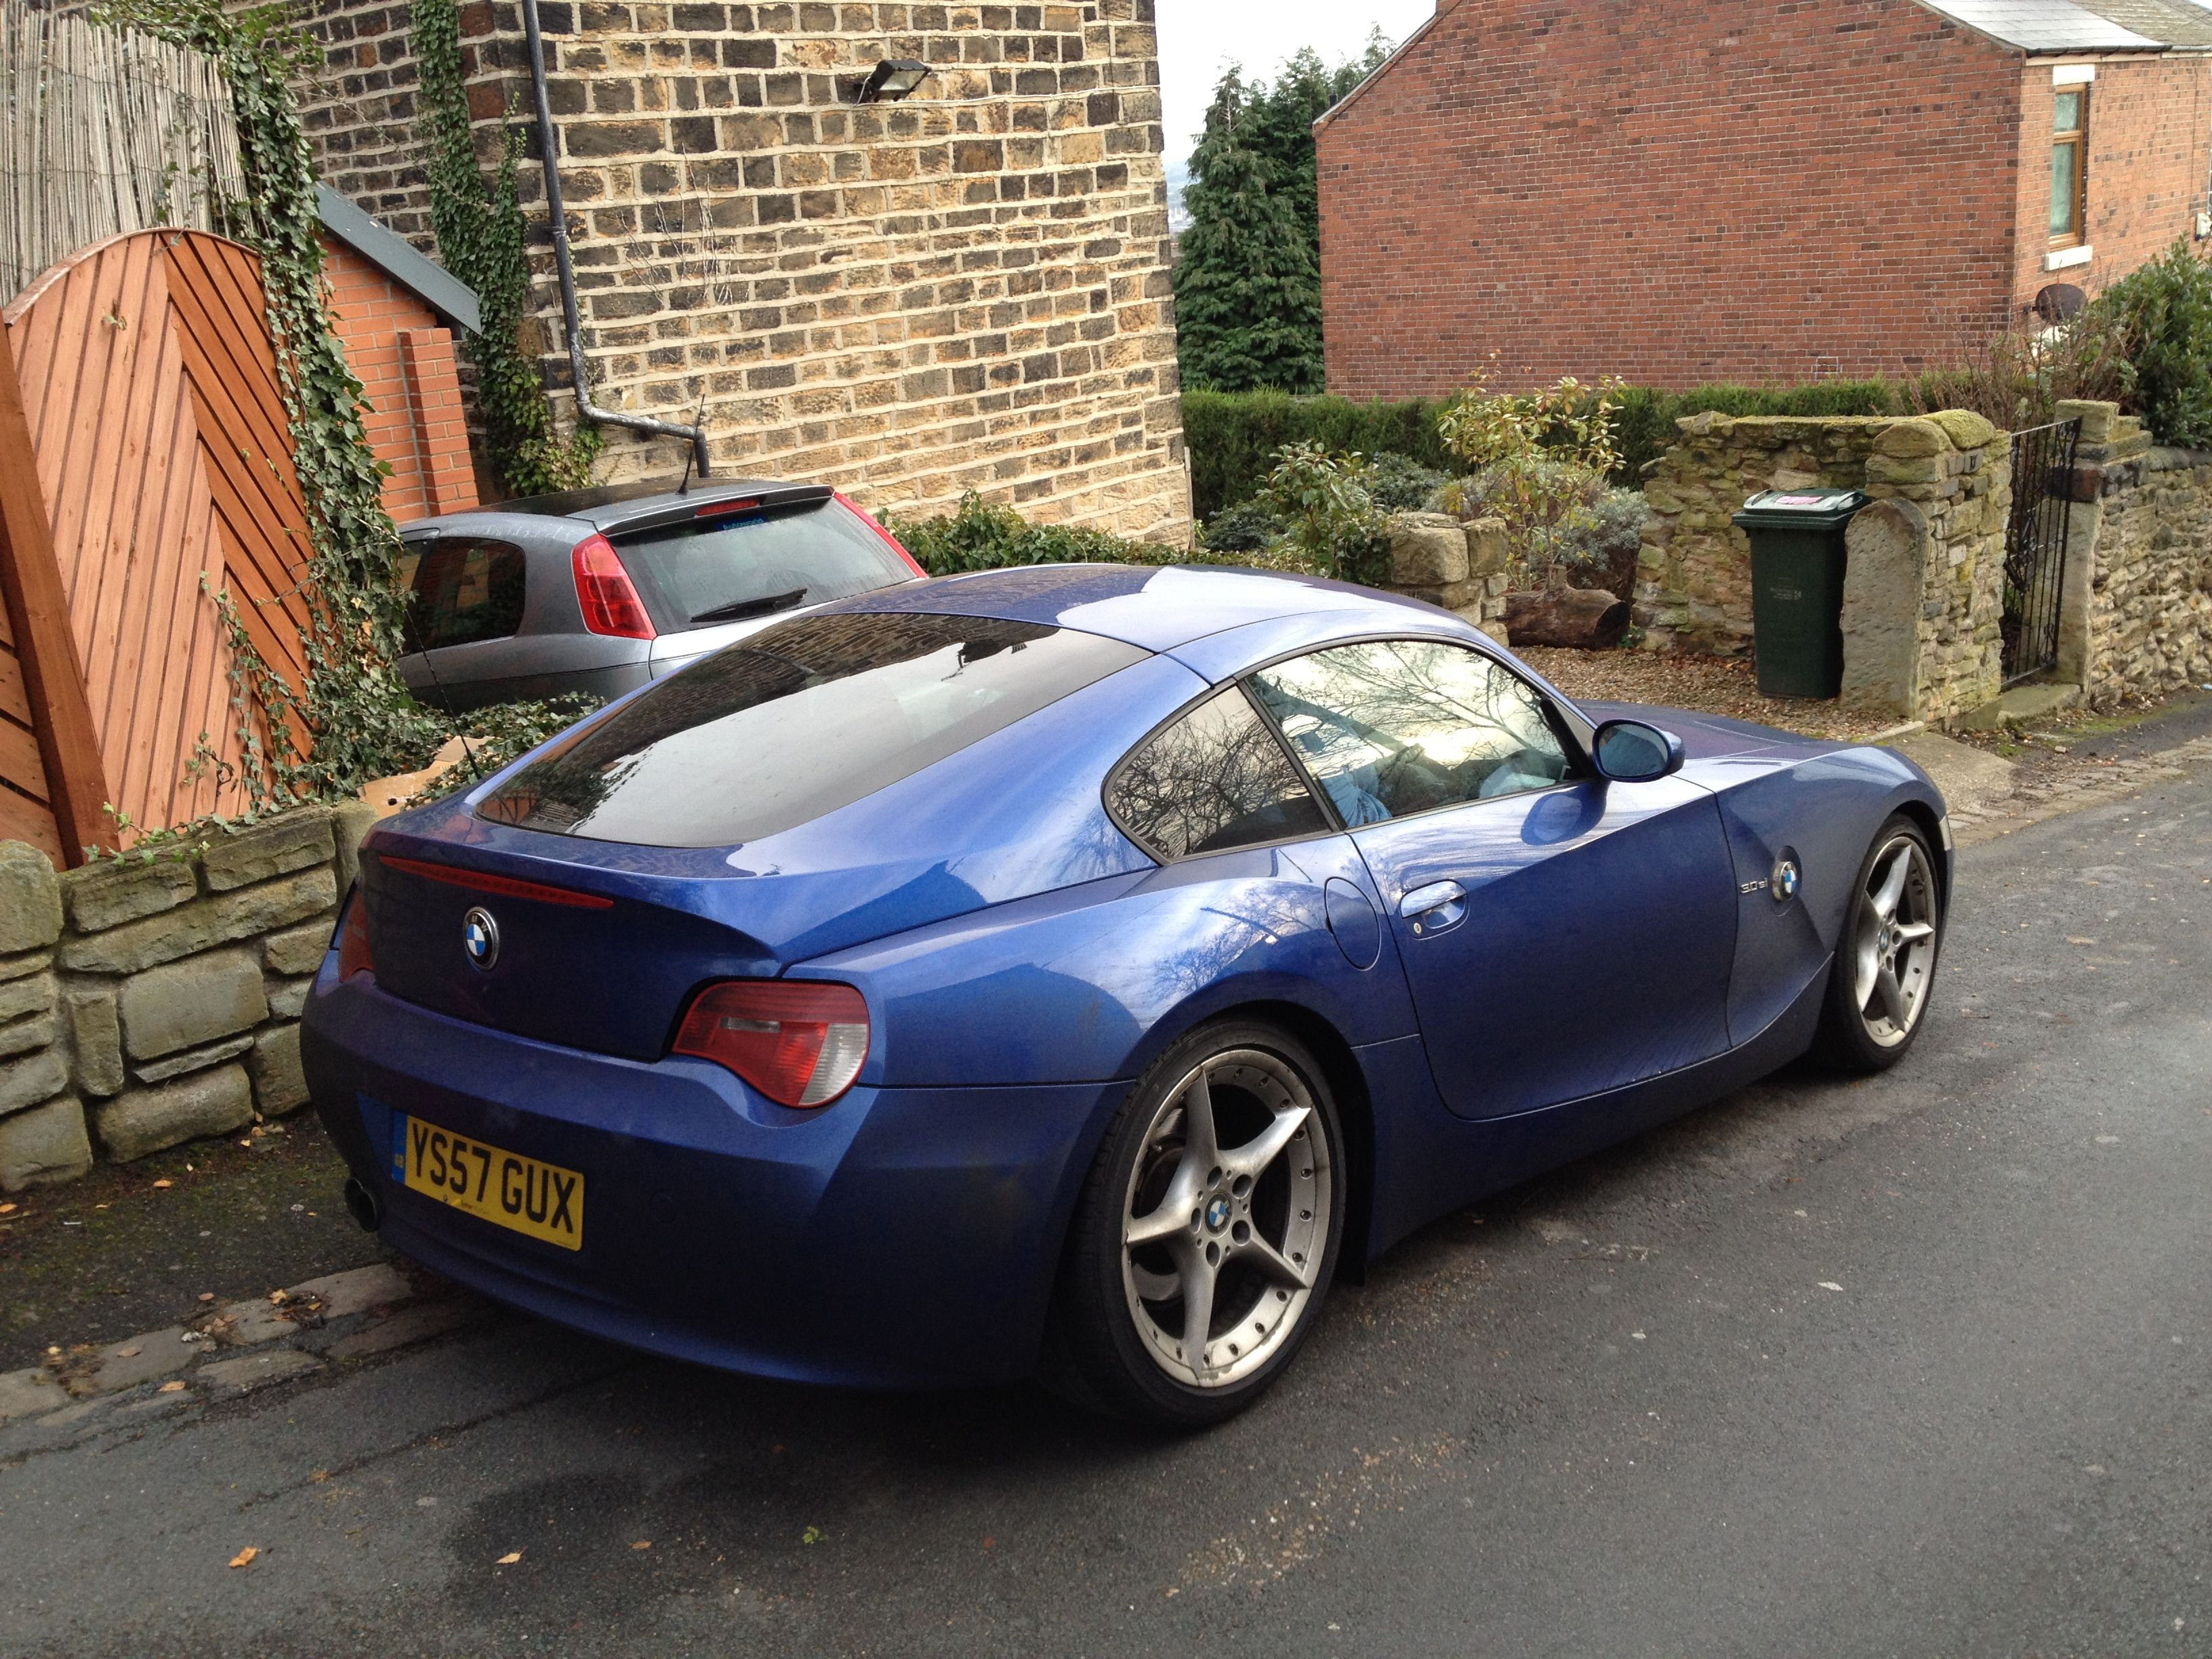 Old Bmw Z4 >> My Old Bmw Z4 Coupe Damn I Miss That Car I Should Have Let It